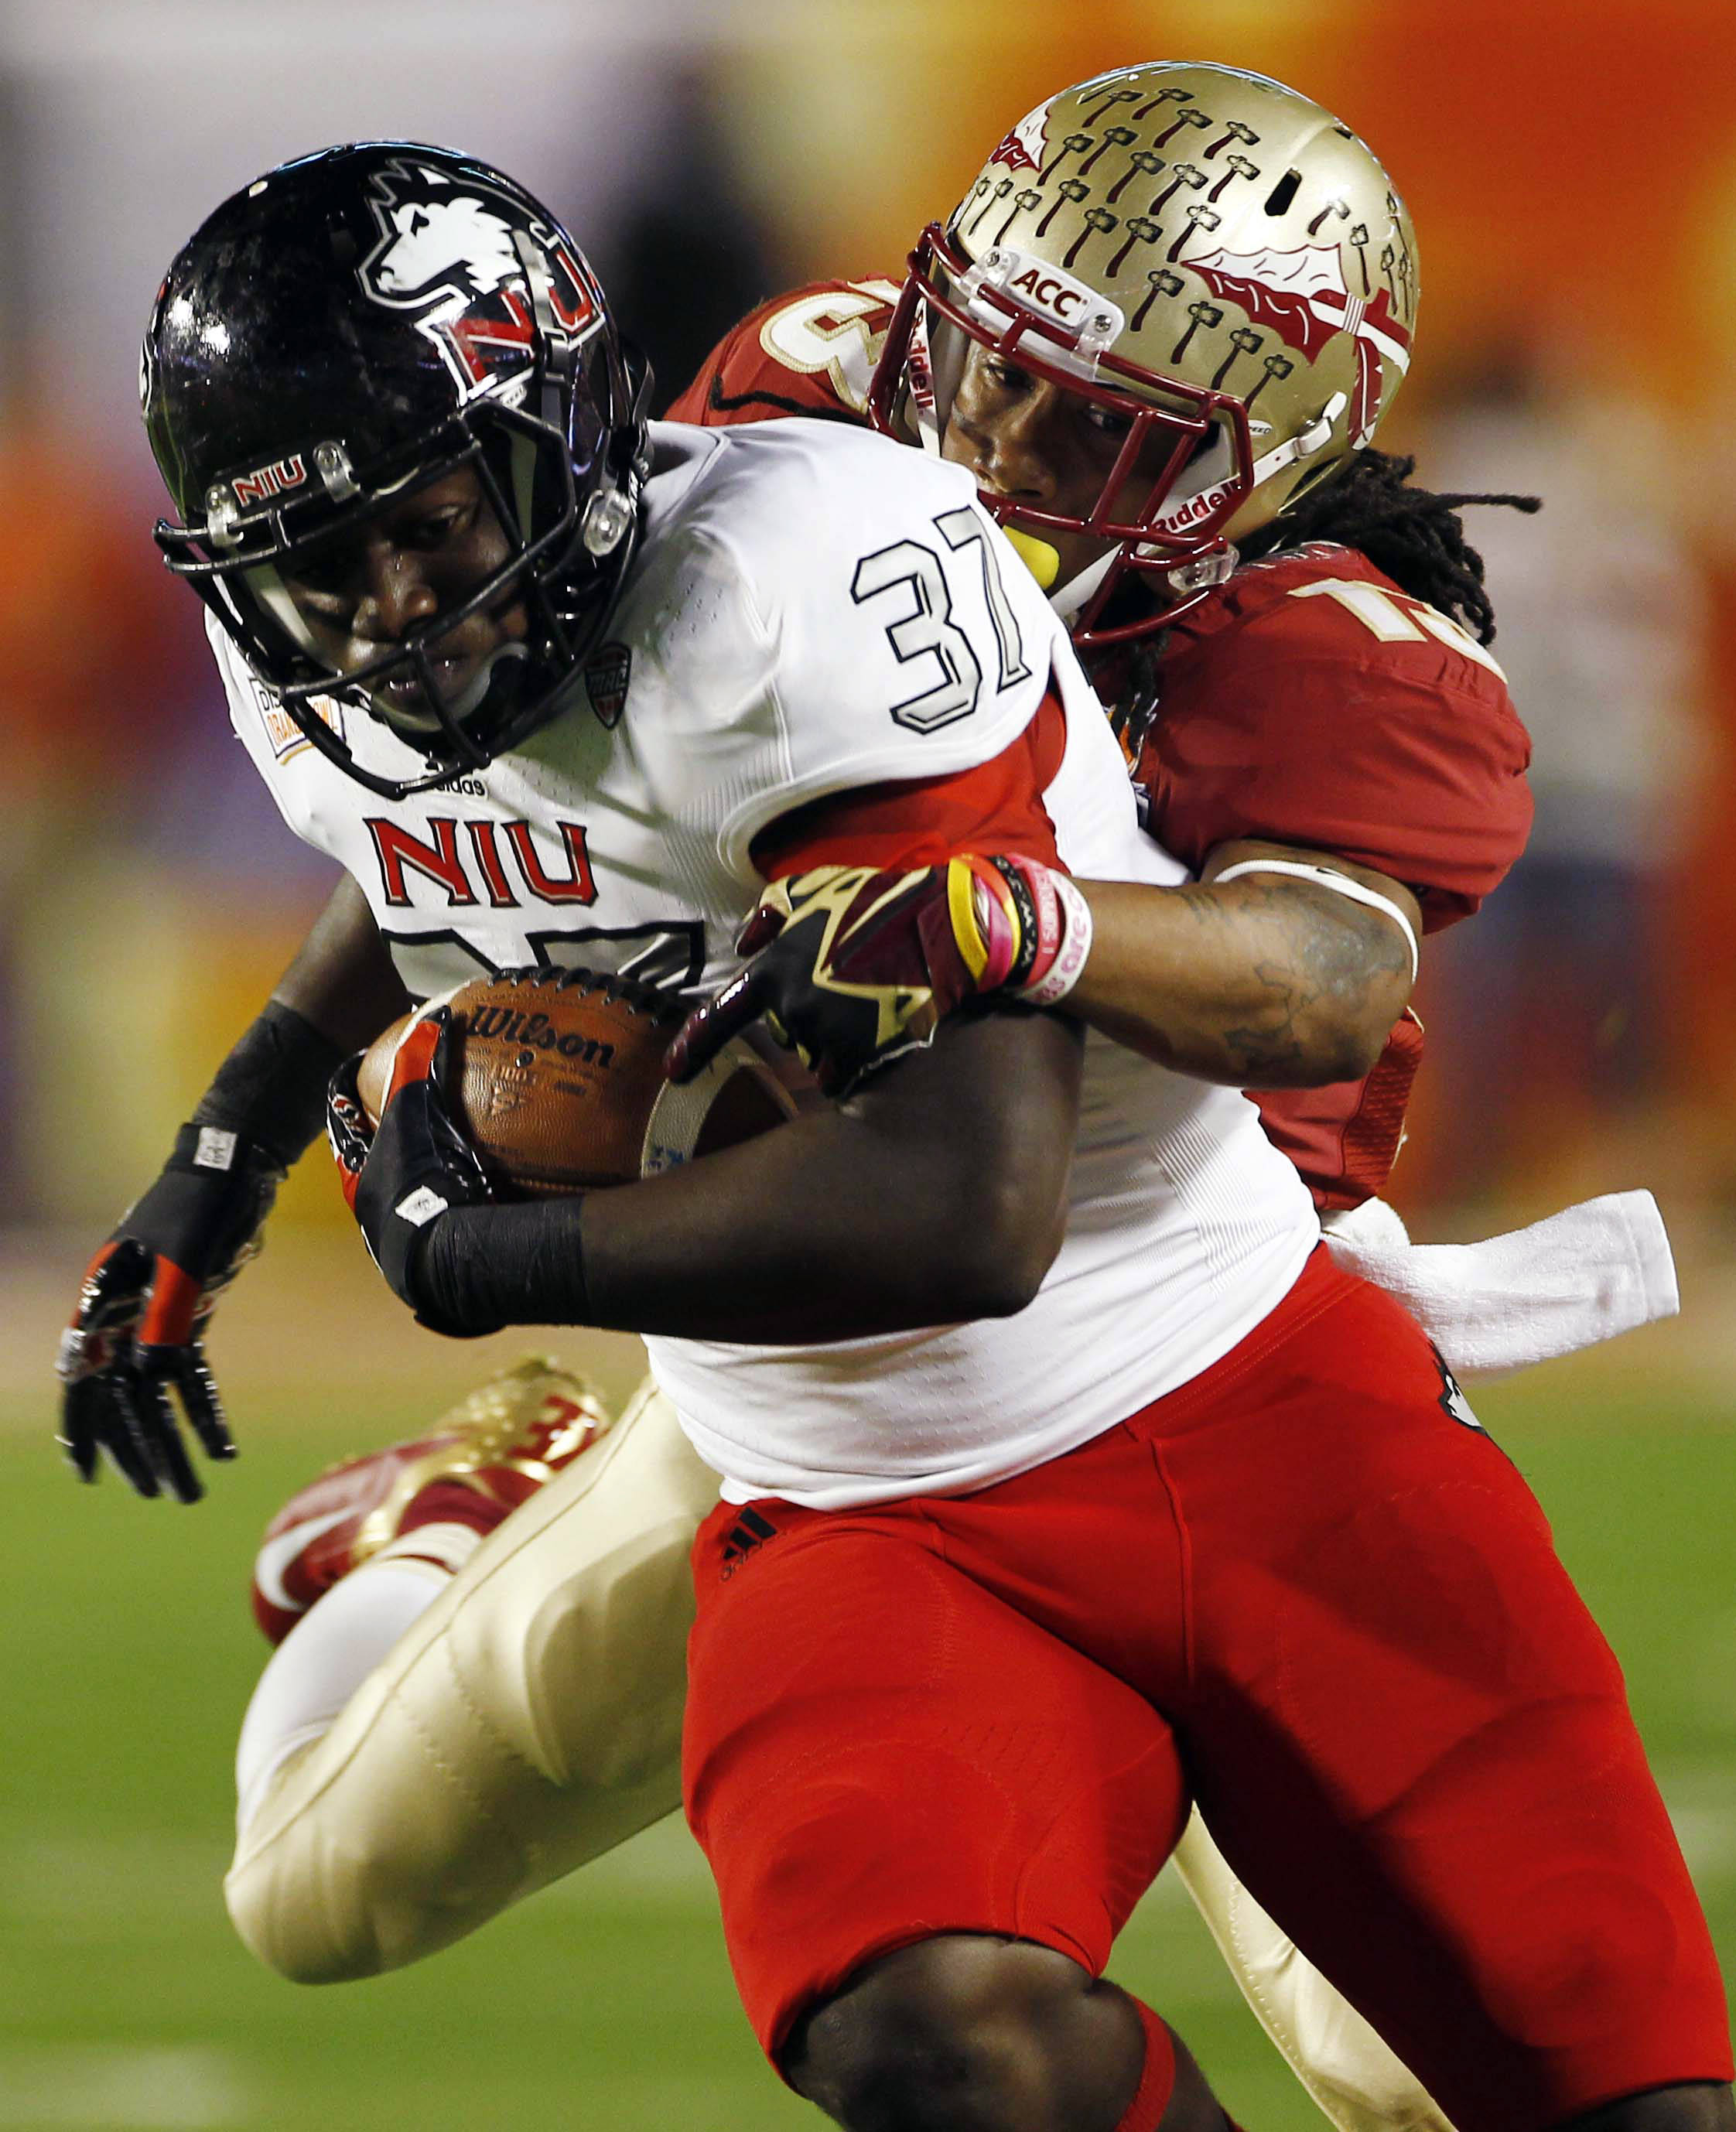 Northern Illinois tight end Desroy Maxwell (37) is tackled by Florida State defensive back Ronald Darby (13) during the first half of the Orange Bowl NCAA college football game, Tuesday, Jan. 1, 2013, in Miami. (AP Photo/J Pat Carter)